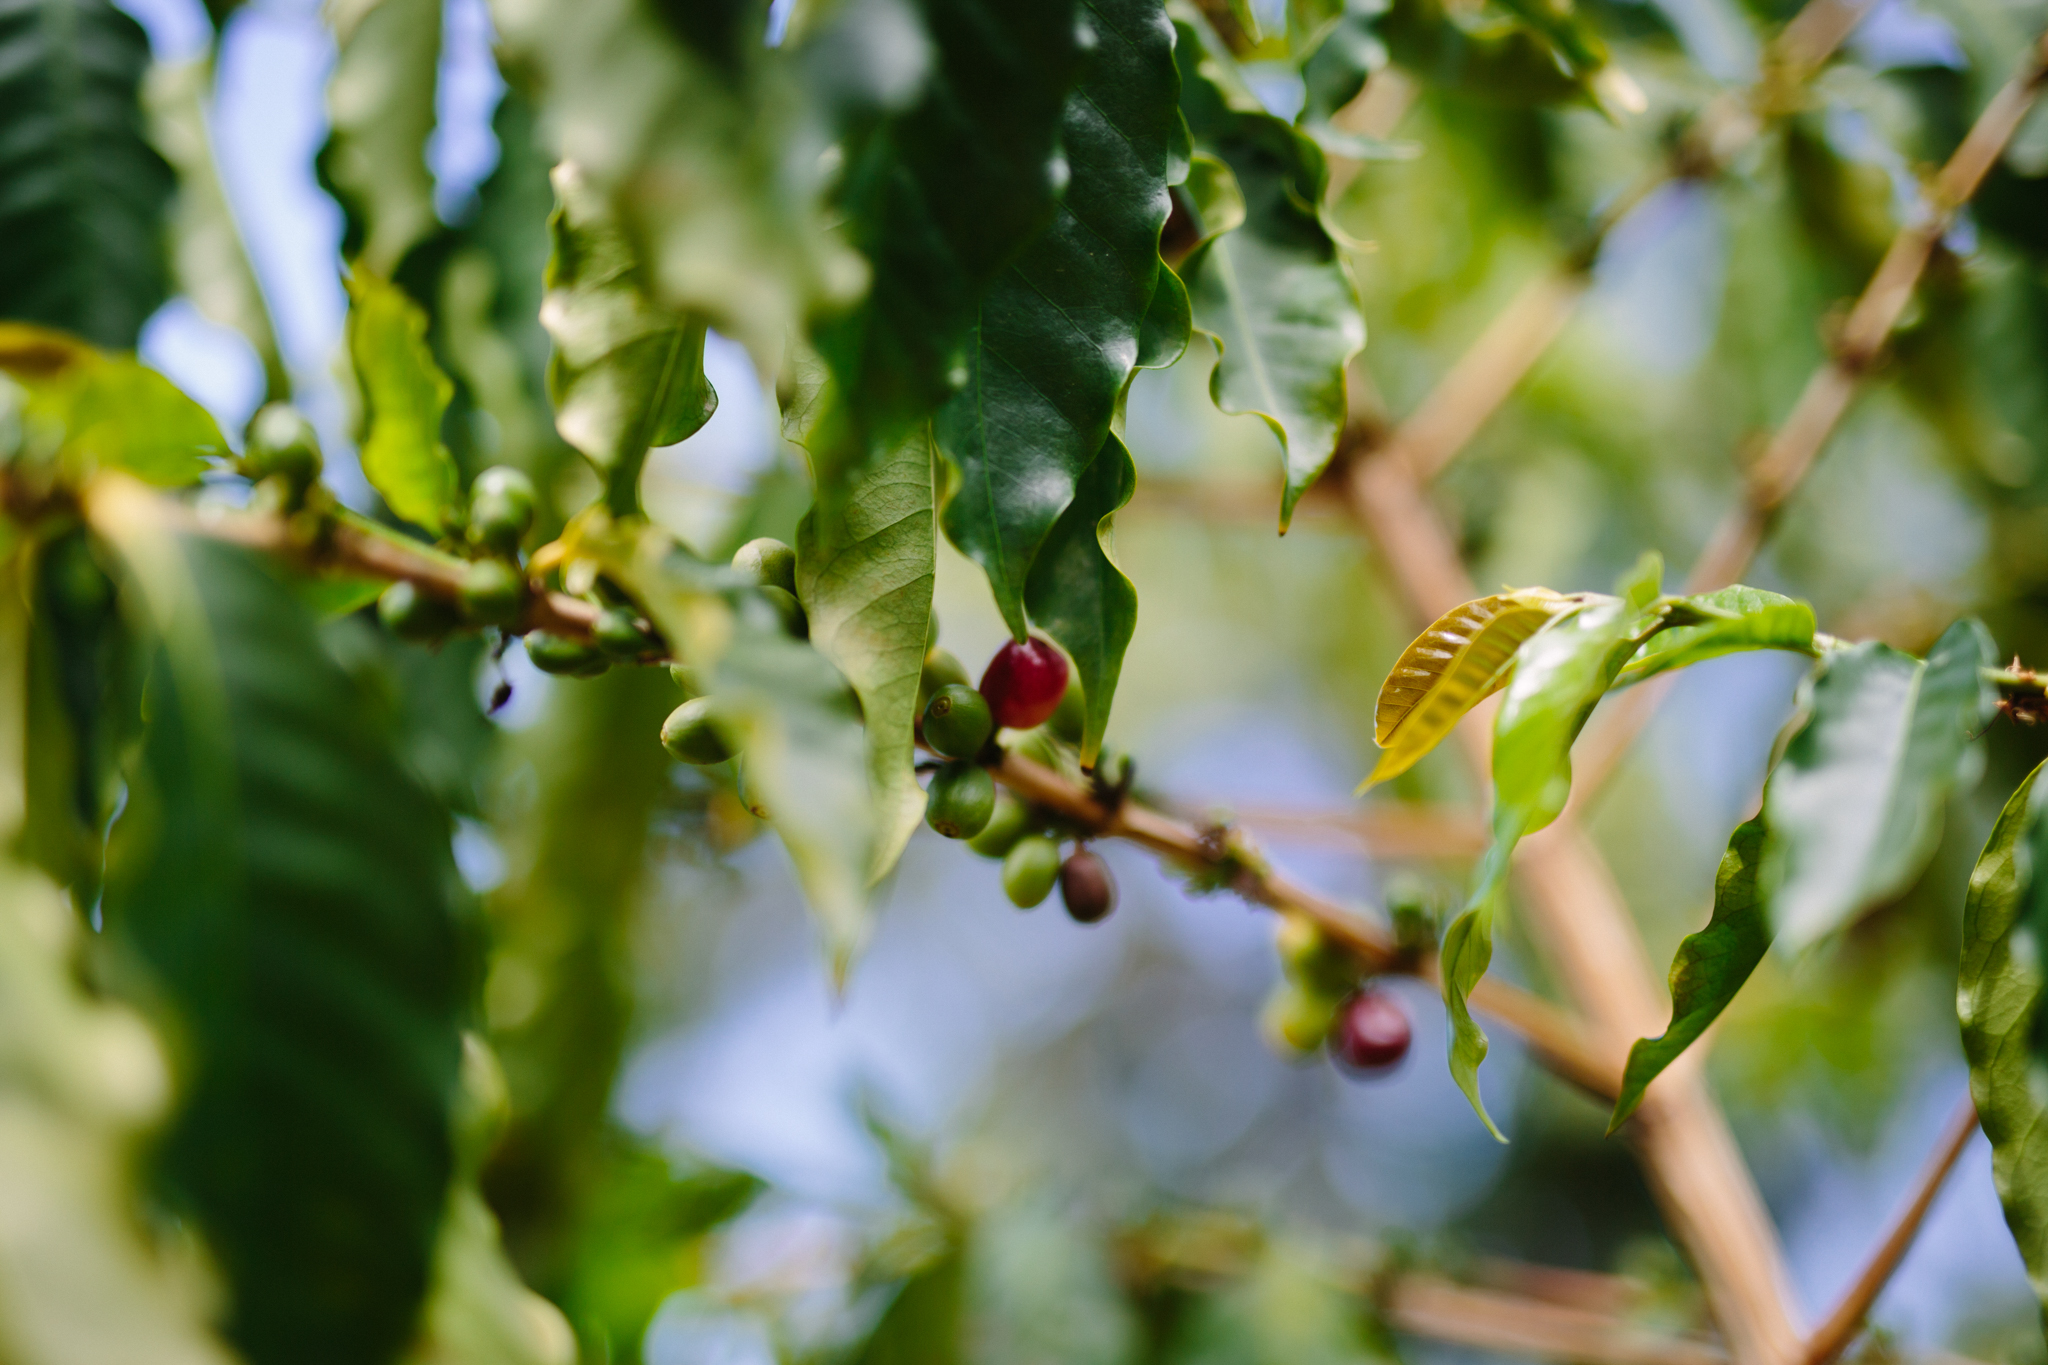 Coffee 'cherries' (the fruit around a coffee bean) at OHCF.